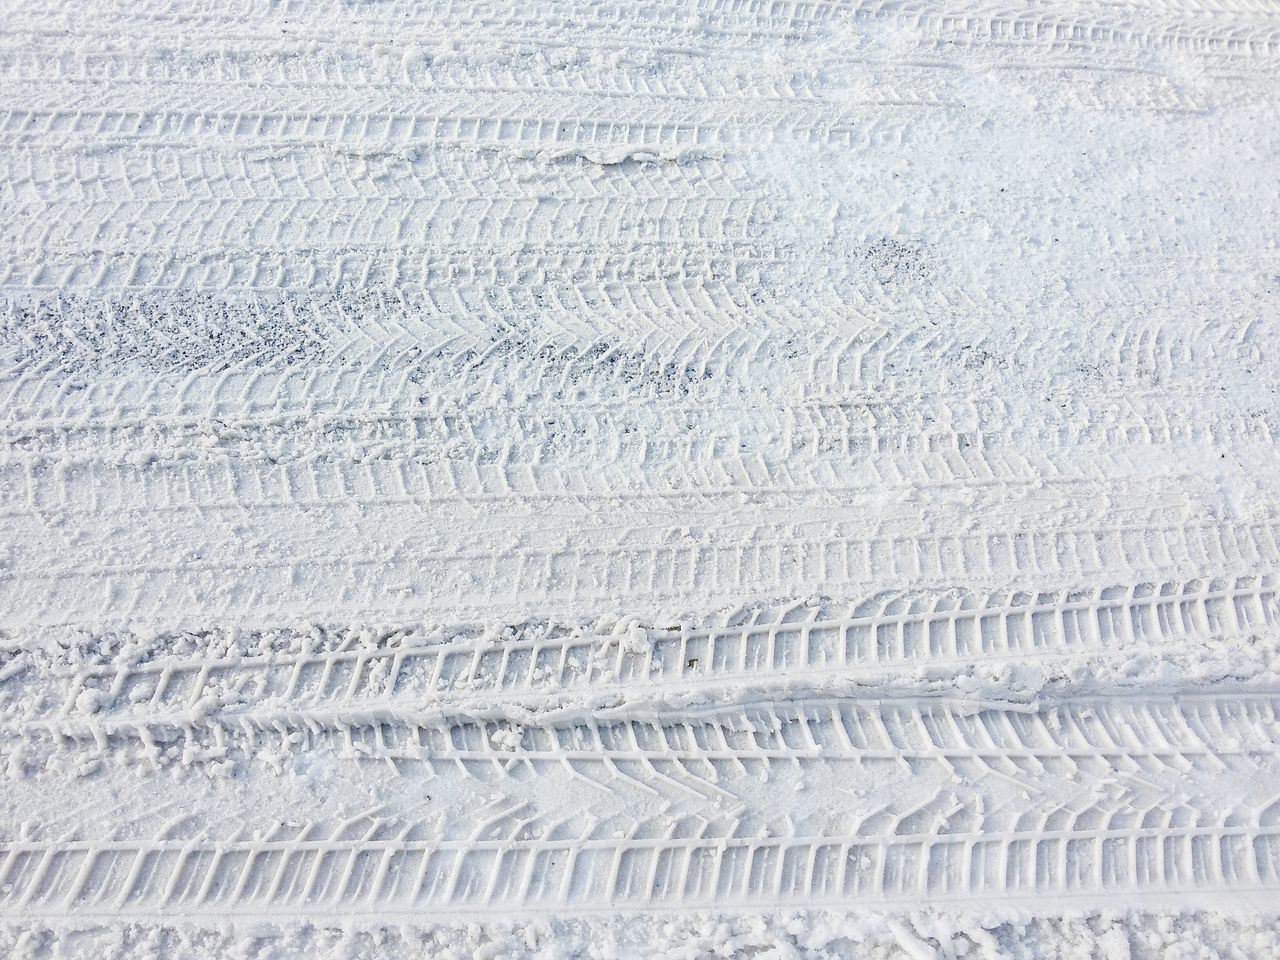 Tracks in the Snow Wintertime Winter Snow Snowy Surface Cold Outside Nature White Traces In The Snow Tracks In Snow Traces Tracks Cold Temperature Covered